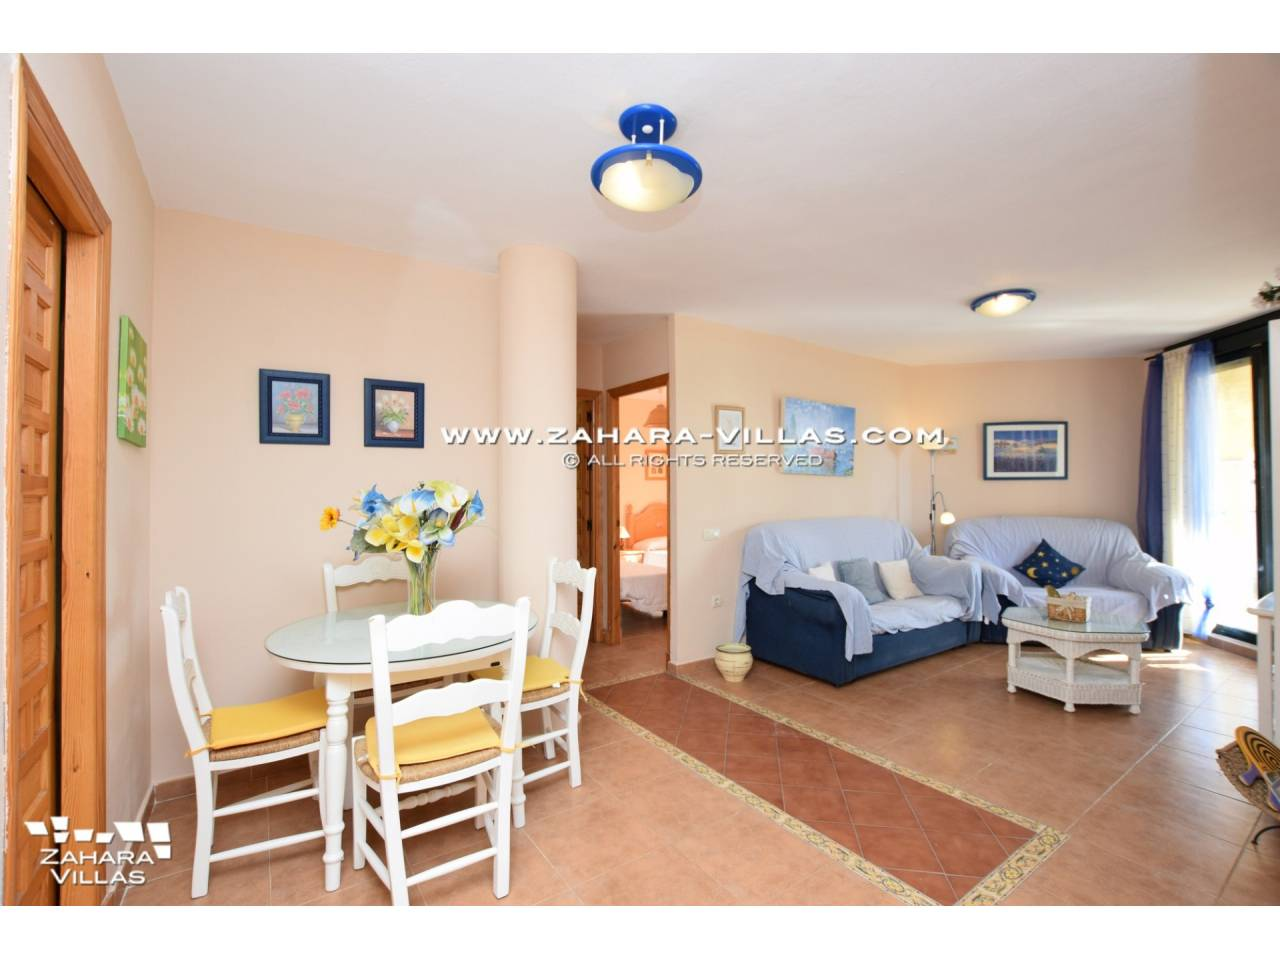 Imagen 12 de Apartment for sale in Zahara de los Atunes